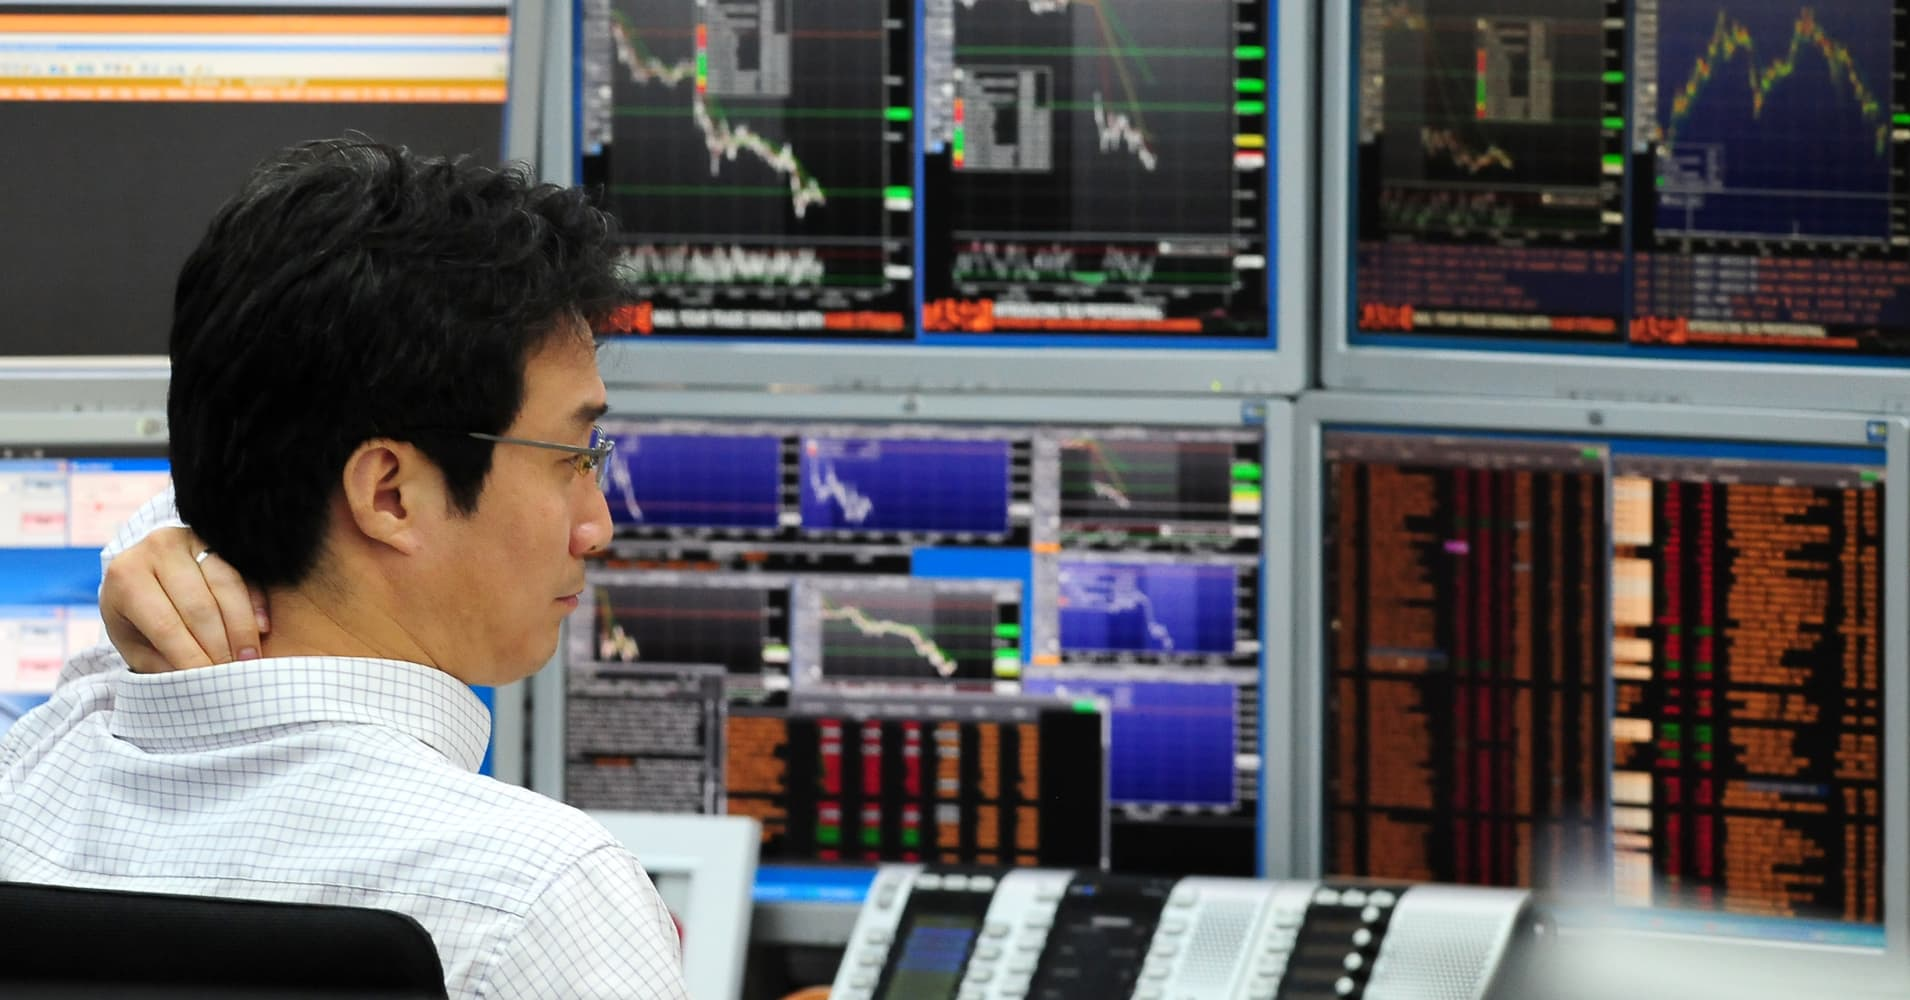 Live blog: Dollar rises against yen as Bank of Japan holds steady and Fed signals rate hike